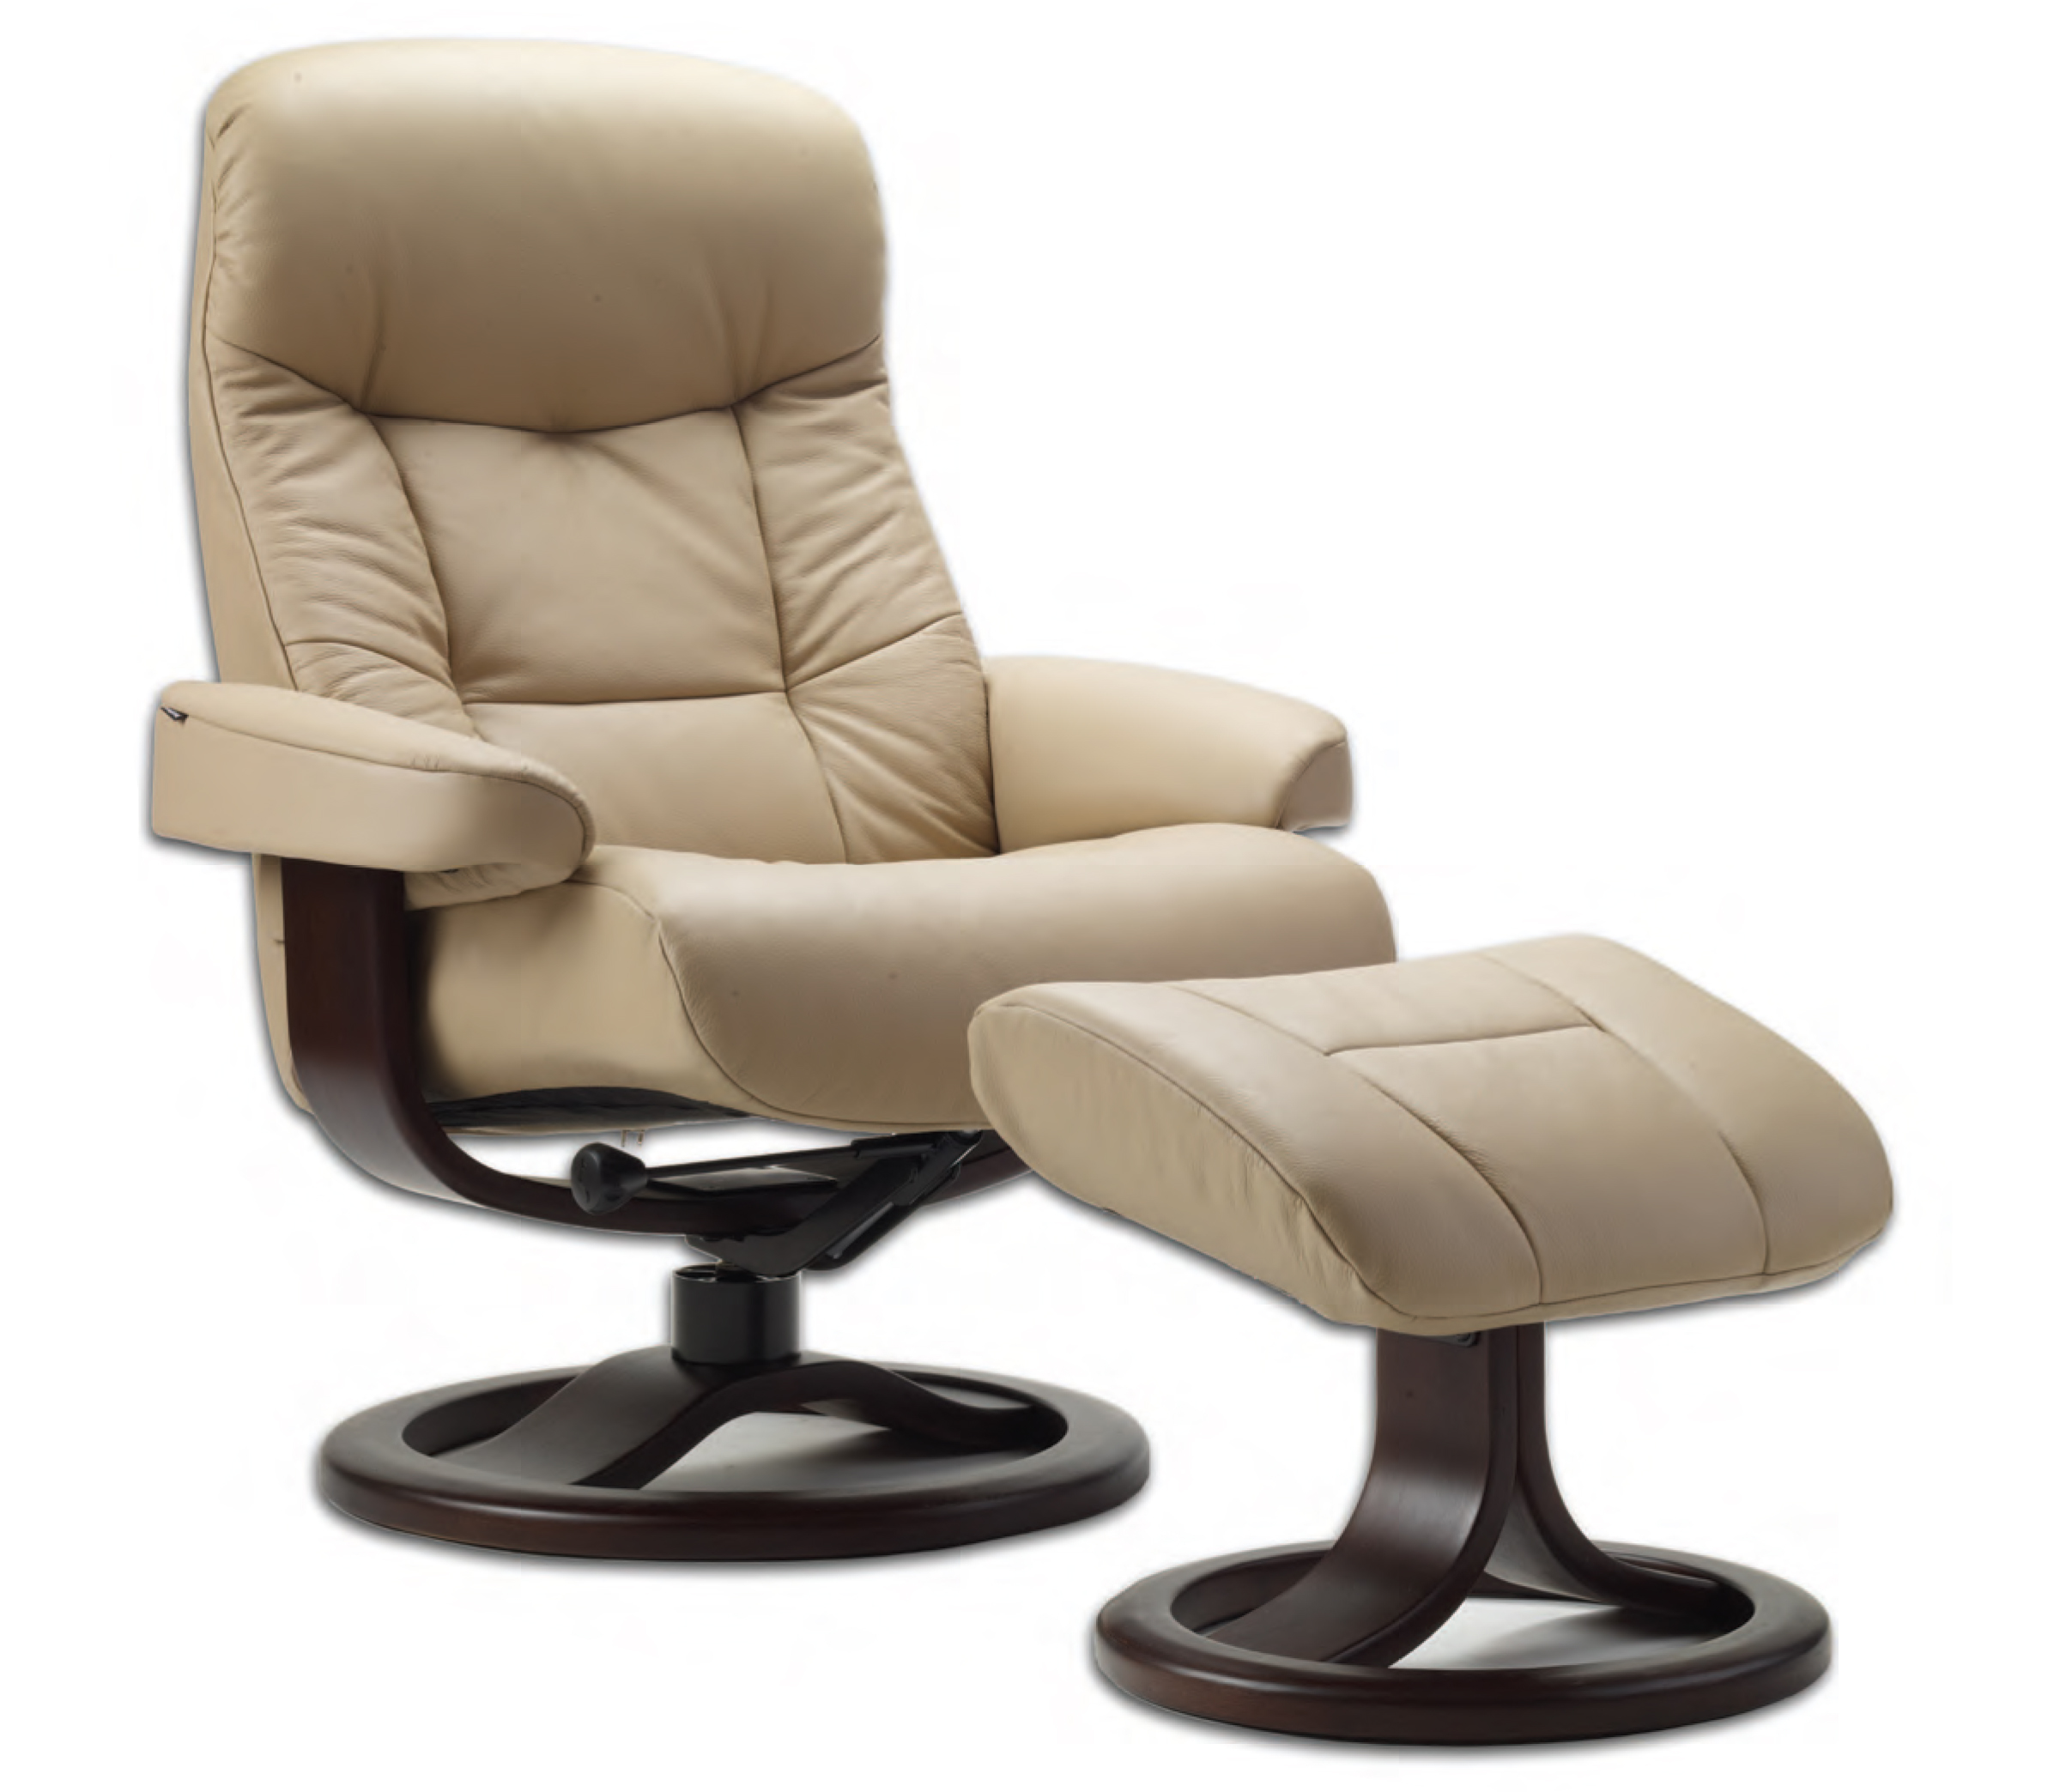 Fjords 215 Muldal Ergonomic Leather Recliner Chair Ottoman Scandinavian Nor